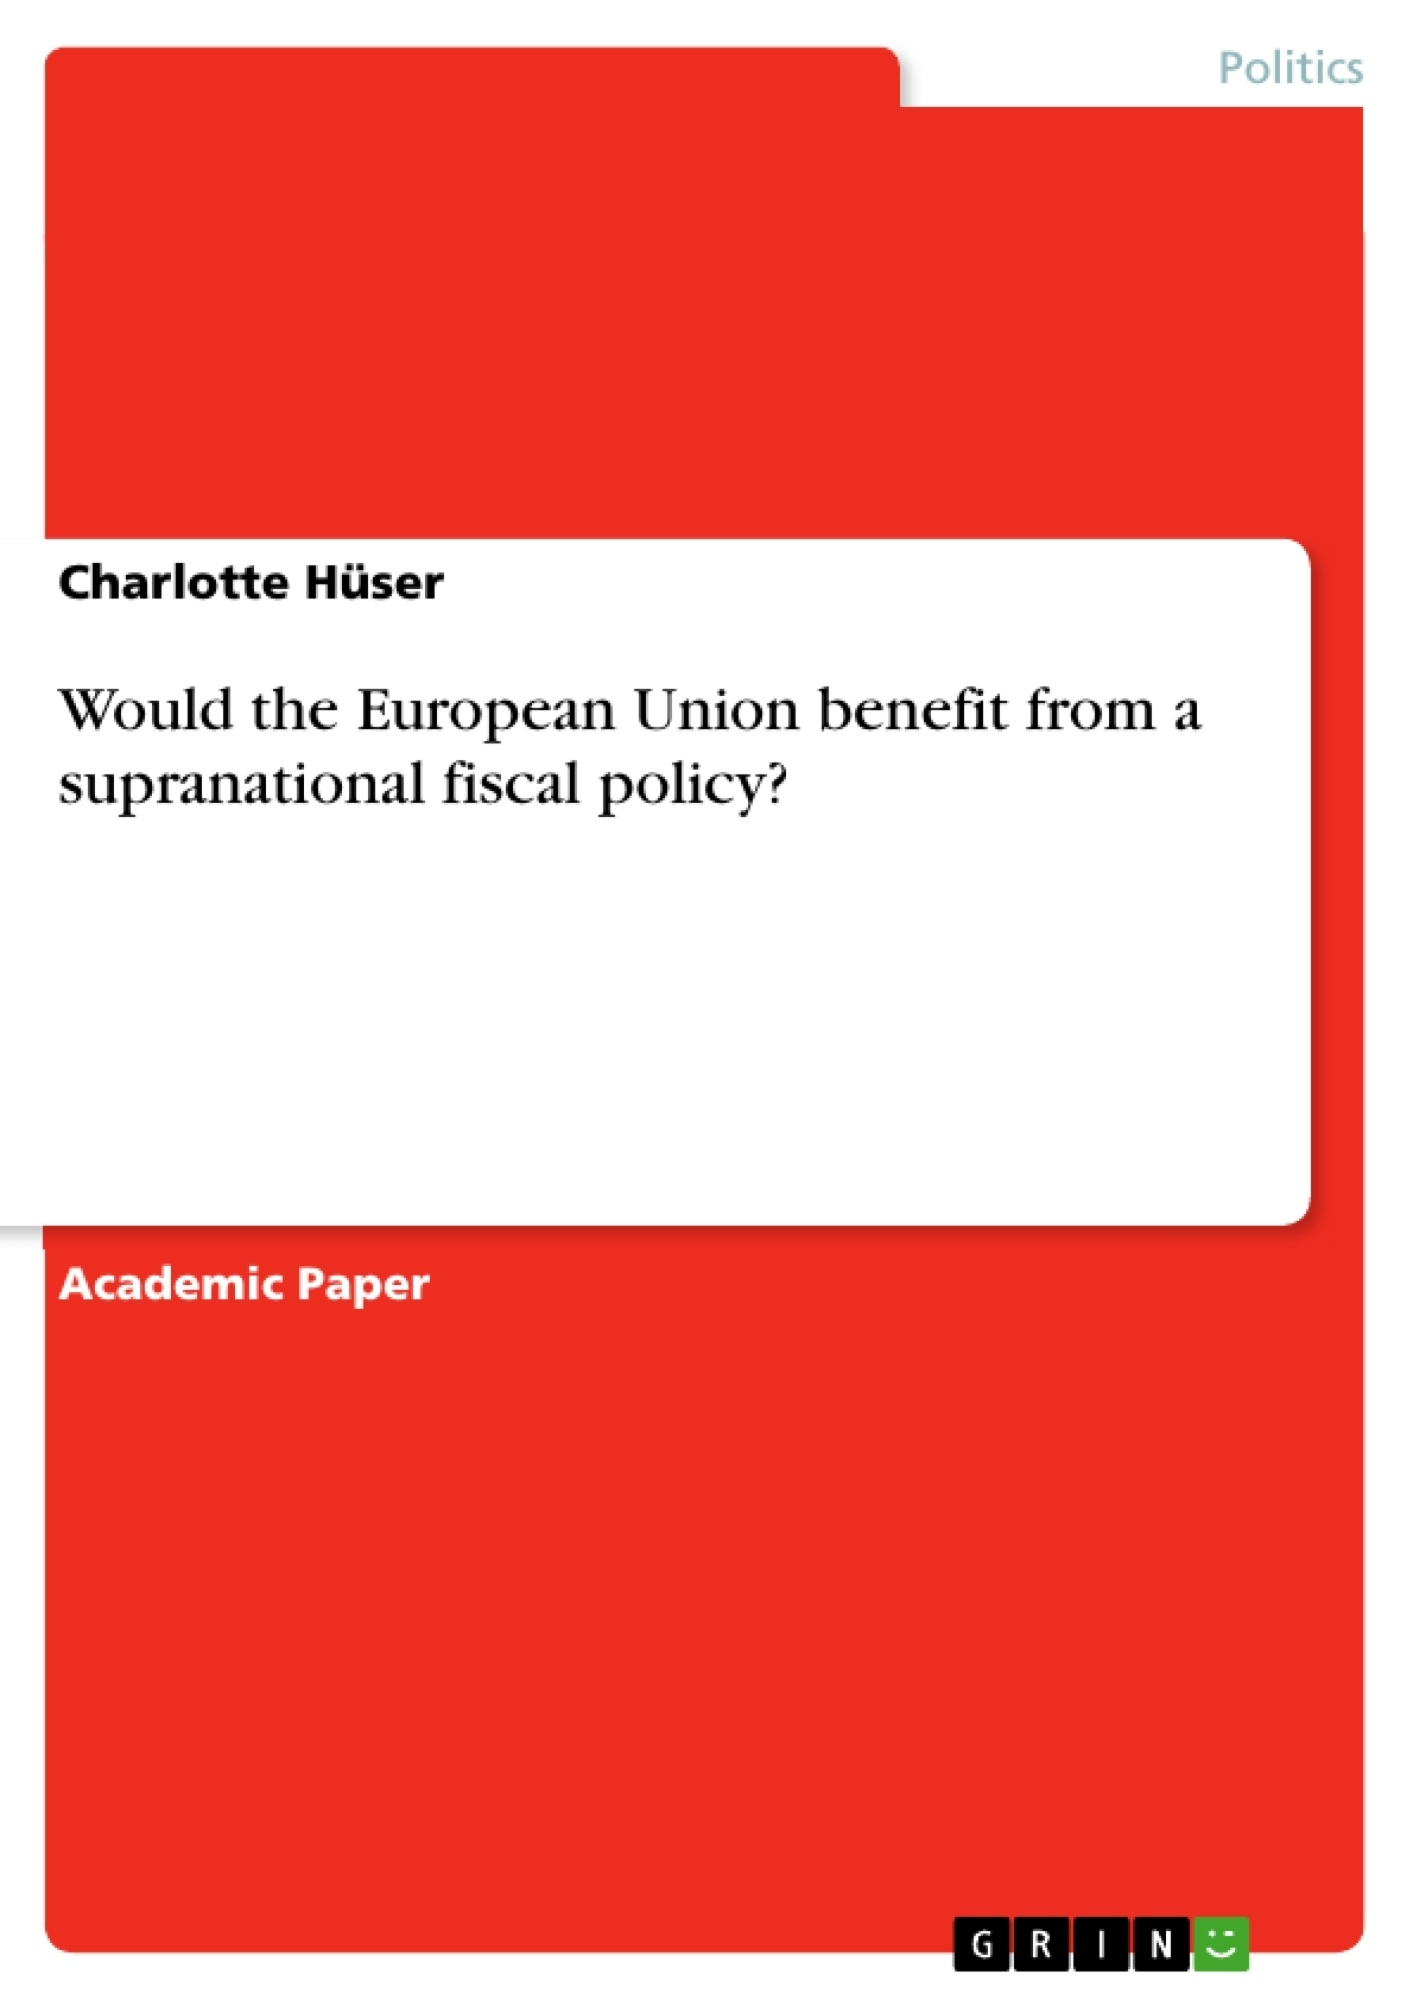 Title: Would the European Union benefit from a supranational fiscal policy?